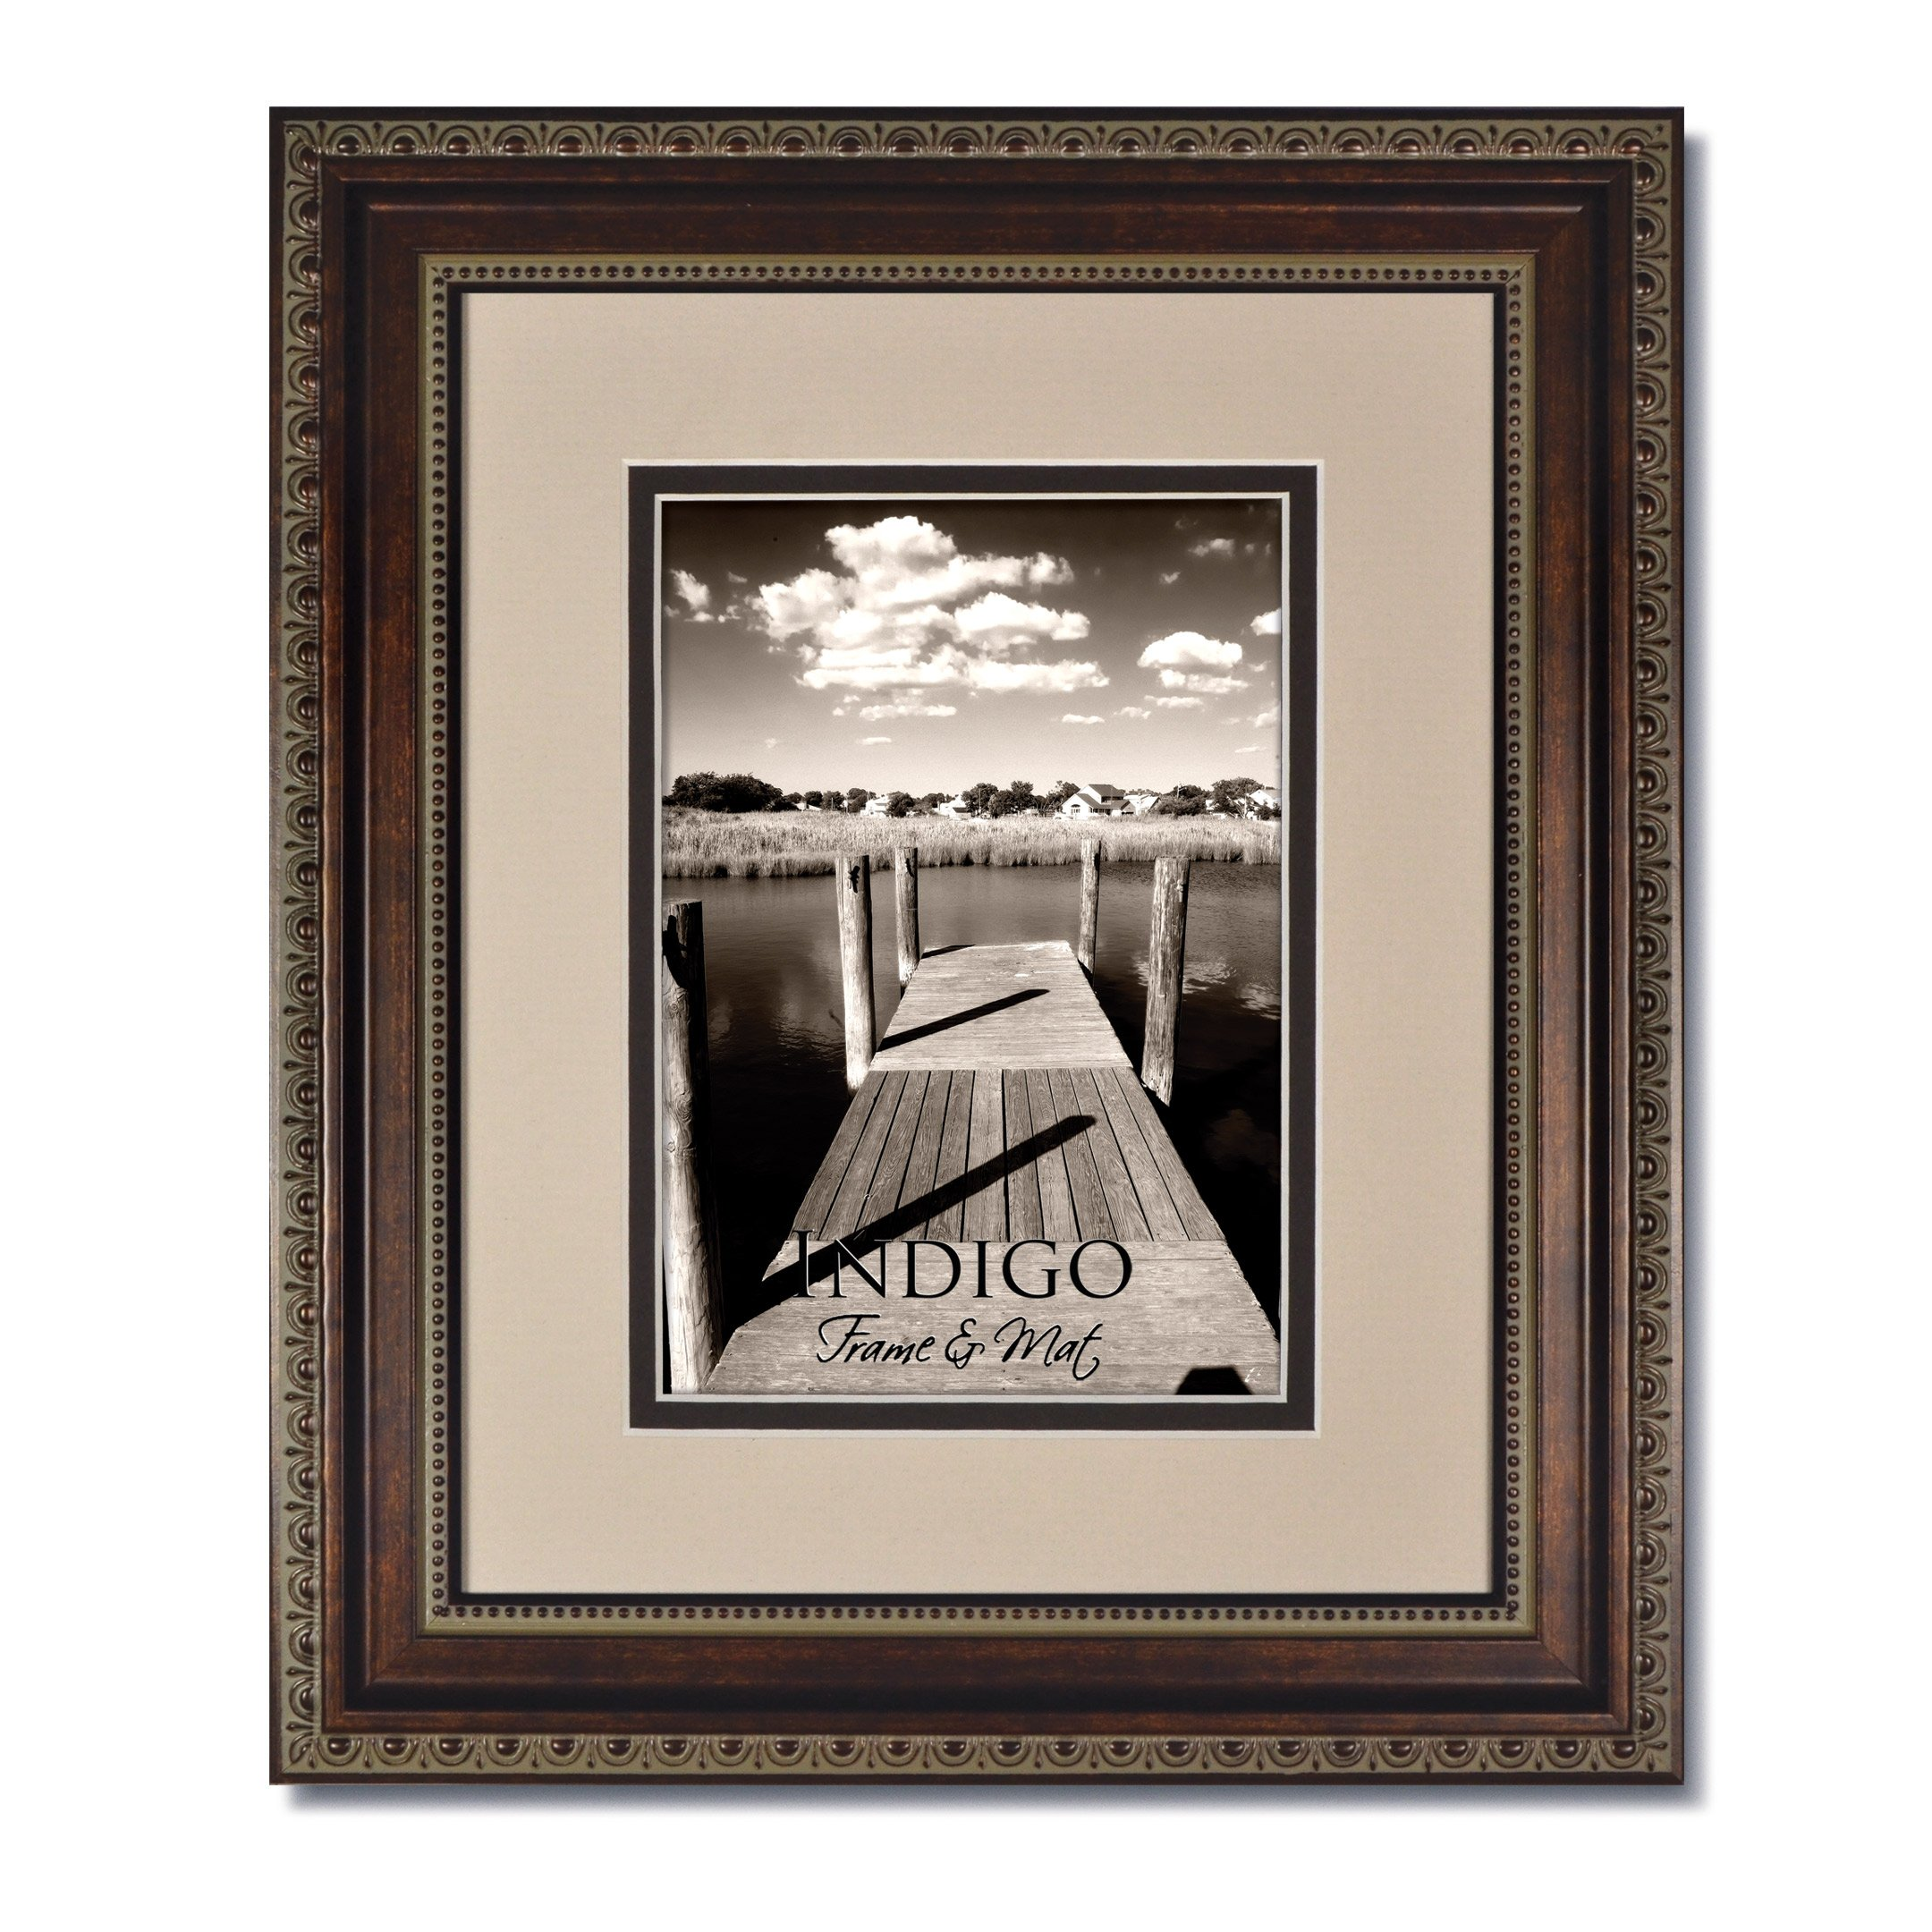 Set of 3 - 16x20 Ornate HeritageBronze Photo Frame with Clear Glass and Oyster/Espresso Double Mat for 11x14